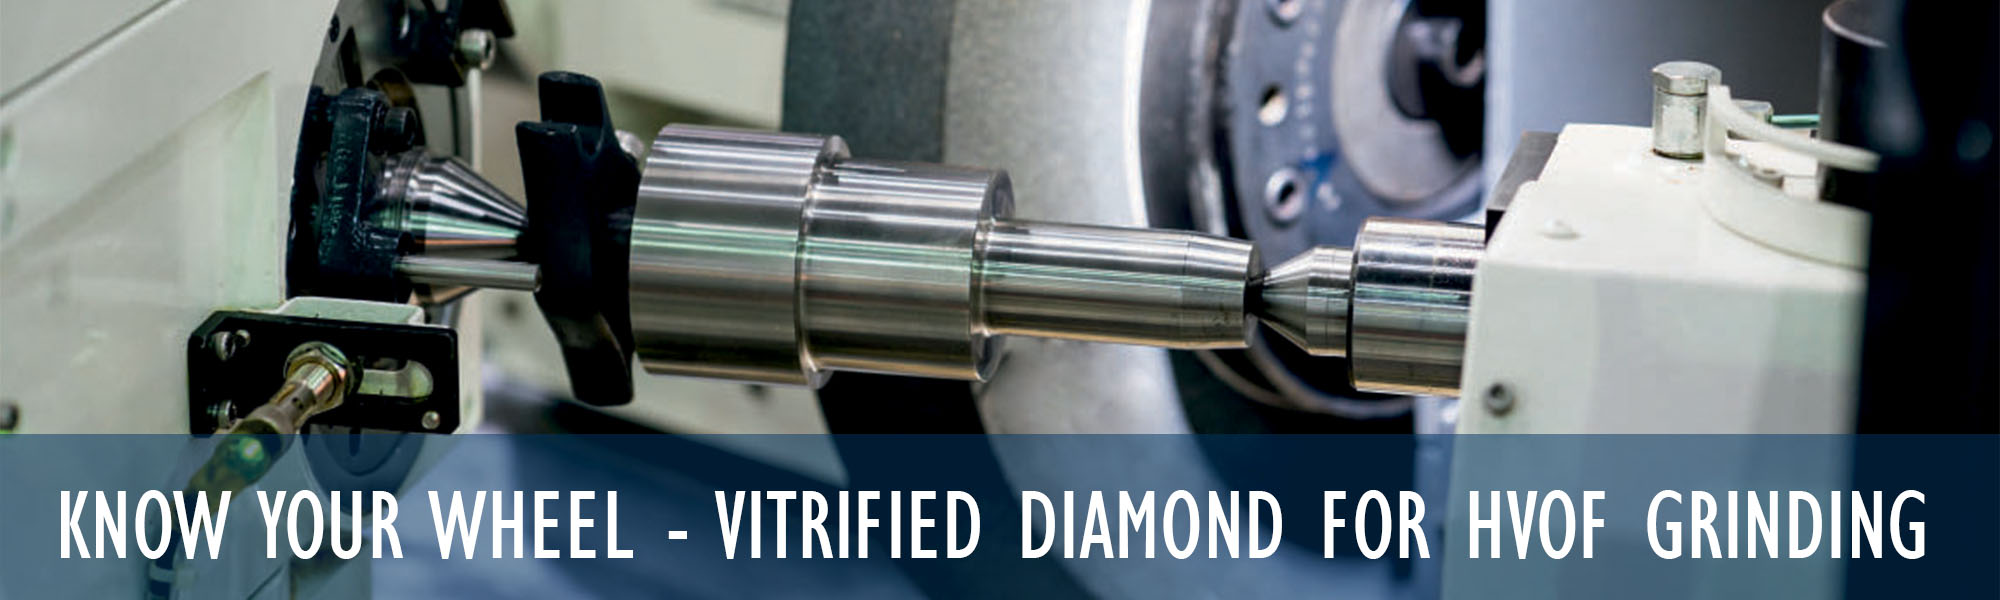 vitrified diamond for hvof grinding - canadian metalworking magazine, Know your wheel